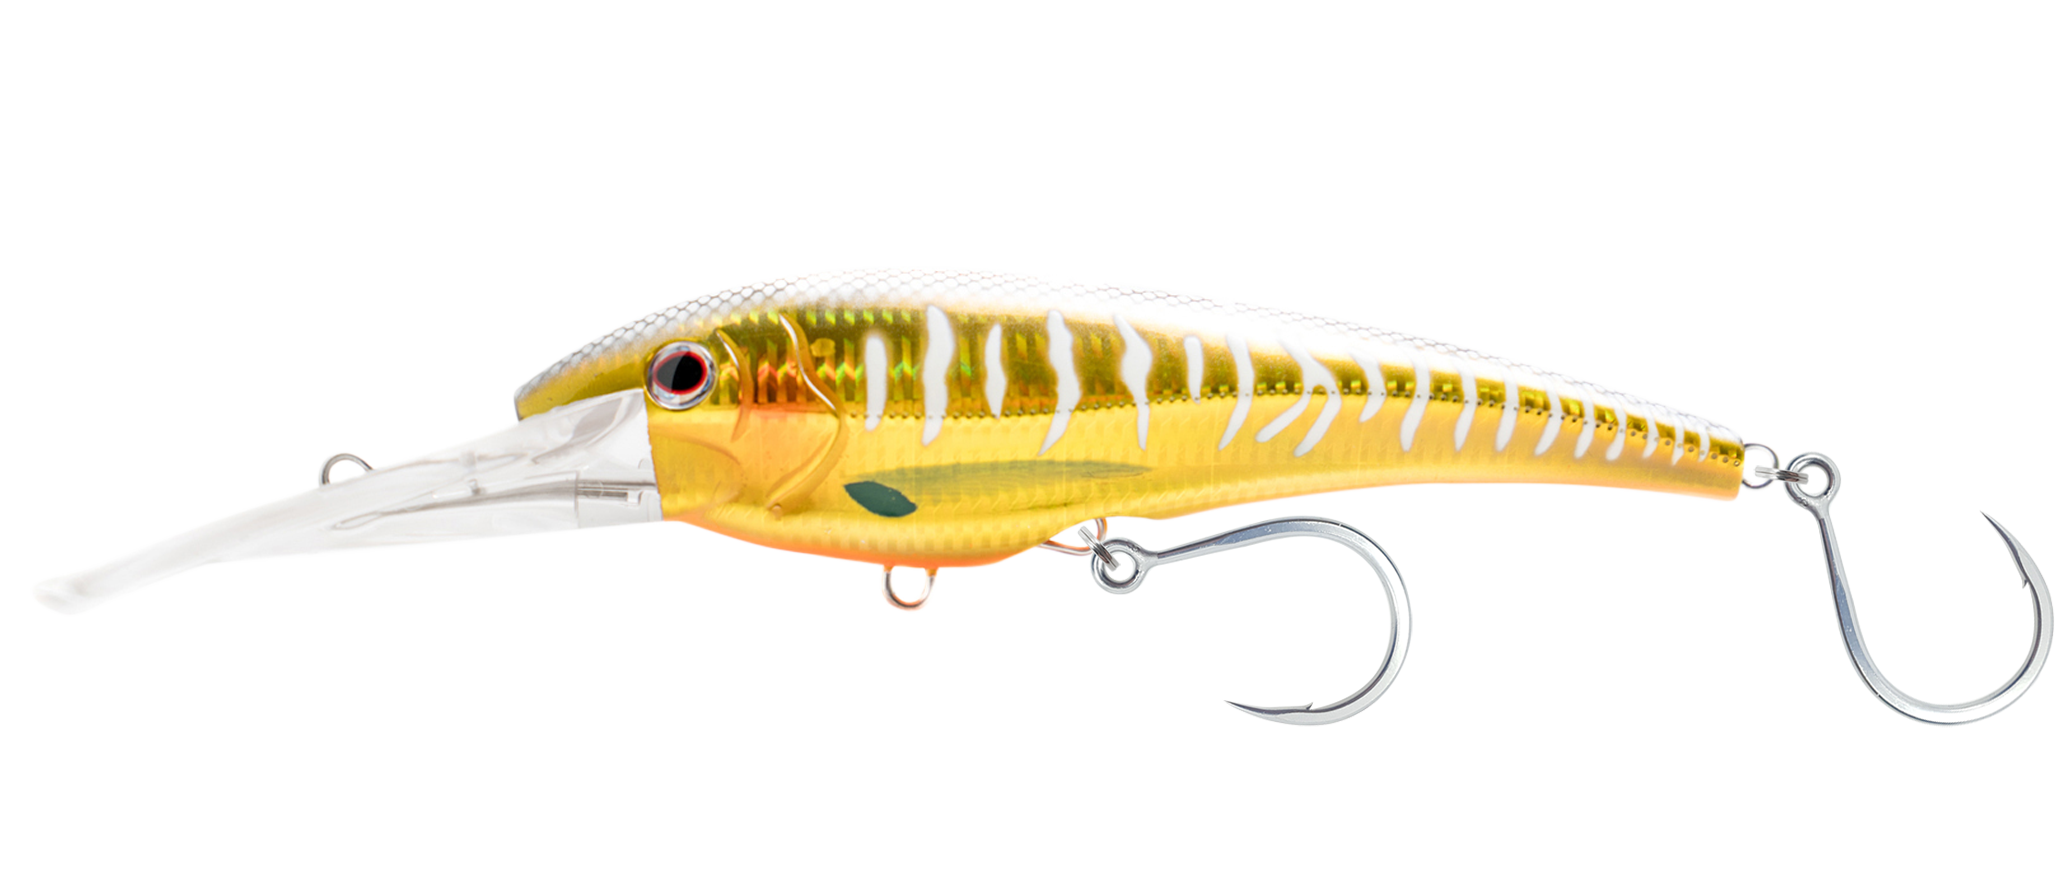 Nomad DTX Minnow 165mm - Sinking